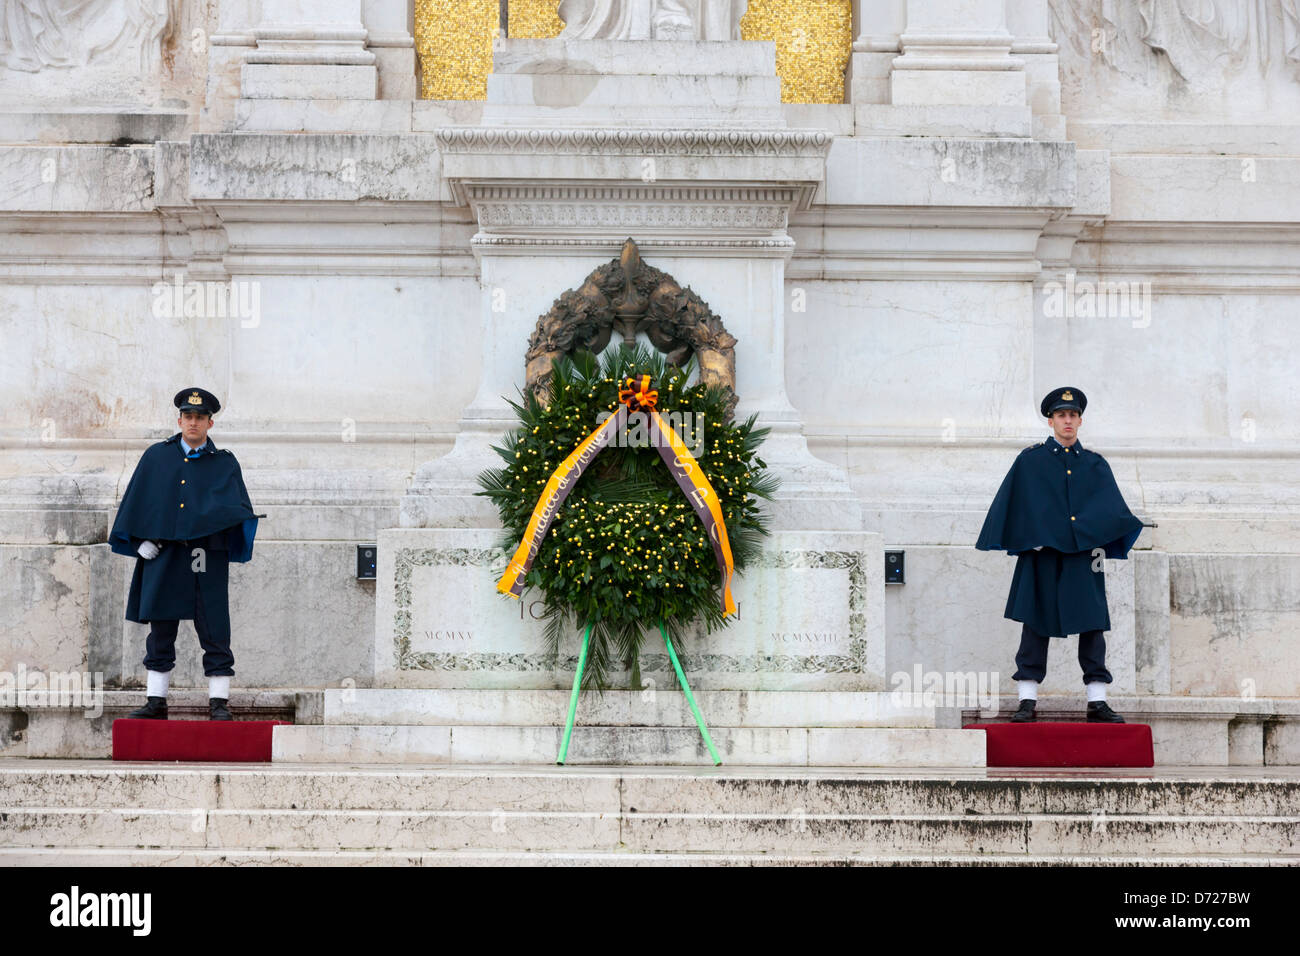 Guards at the Altar of the Fatherland in Rome, Italy - Stock Image